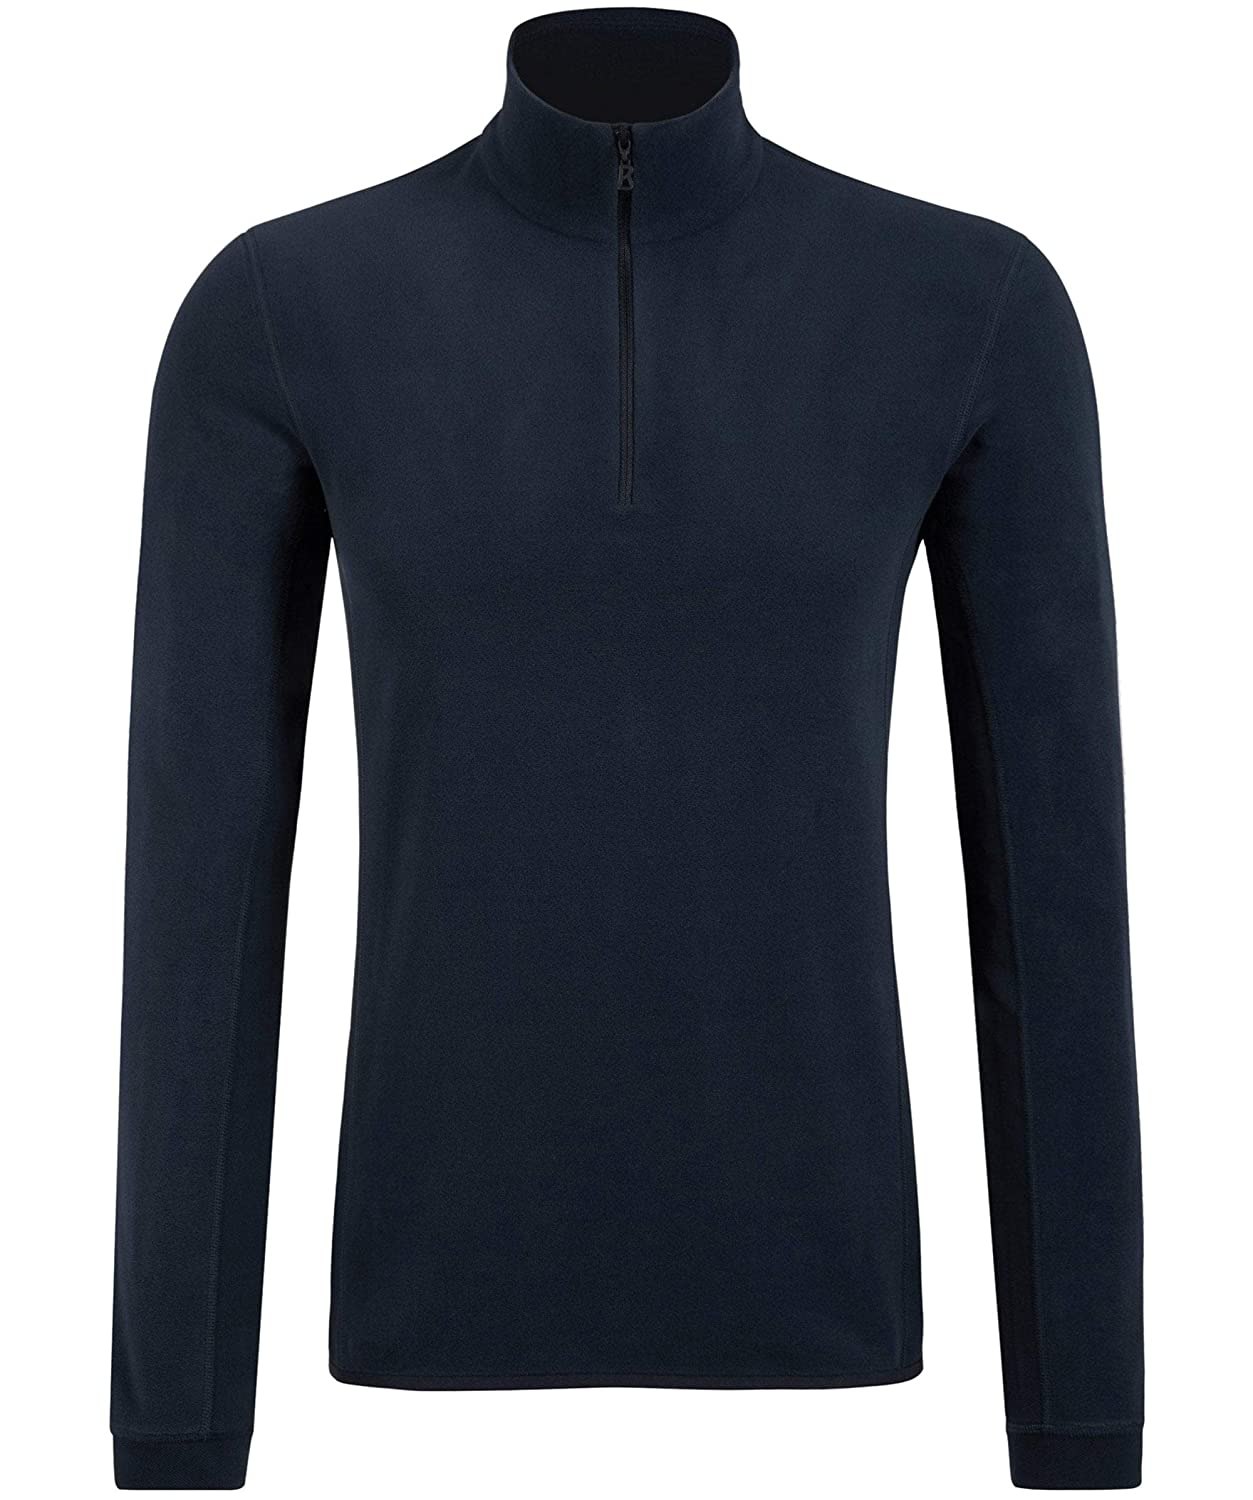 Bogner Herren Half-Zip Mirko Fleece Top Blau